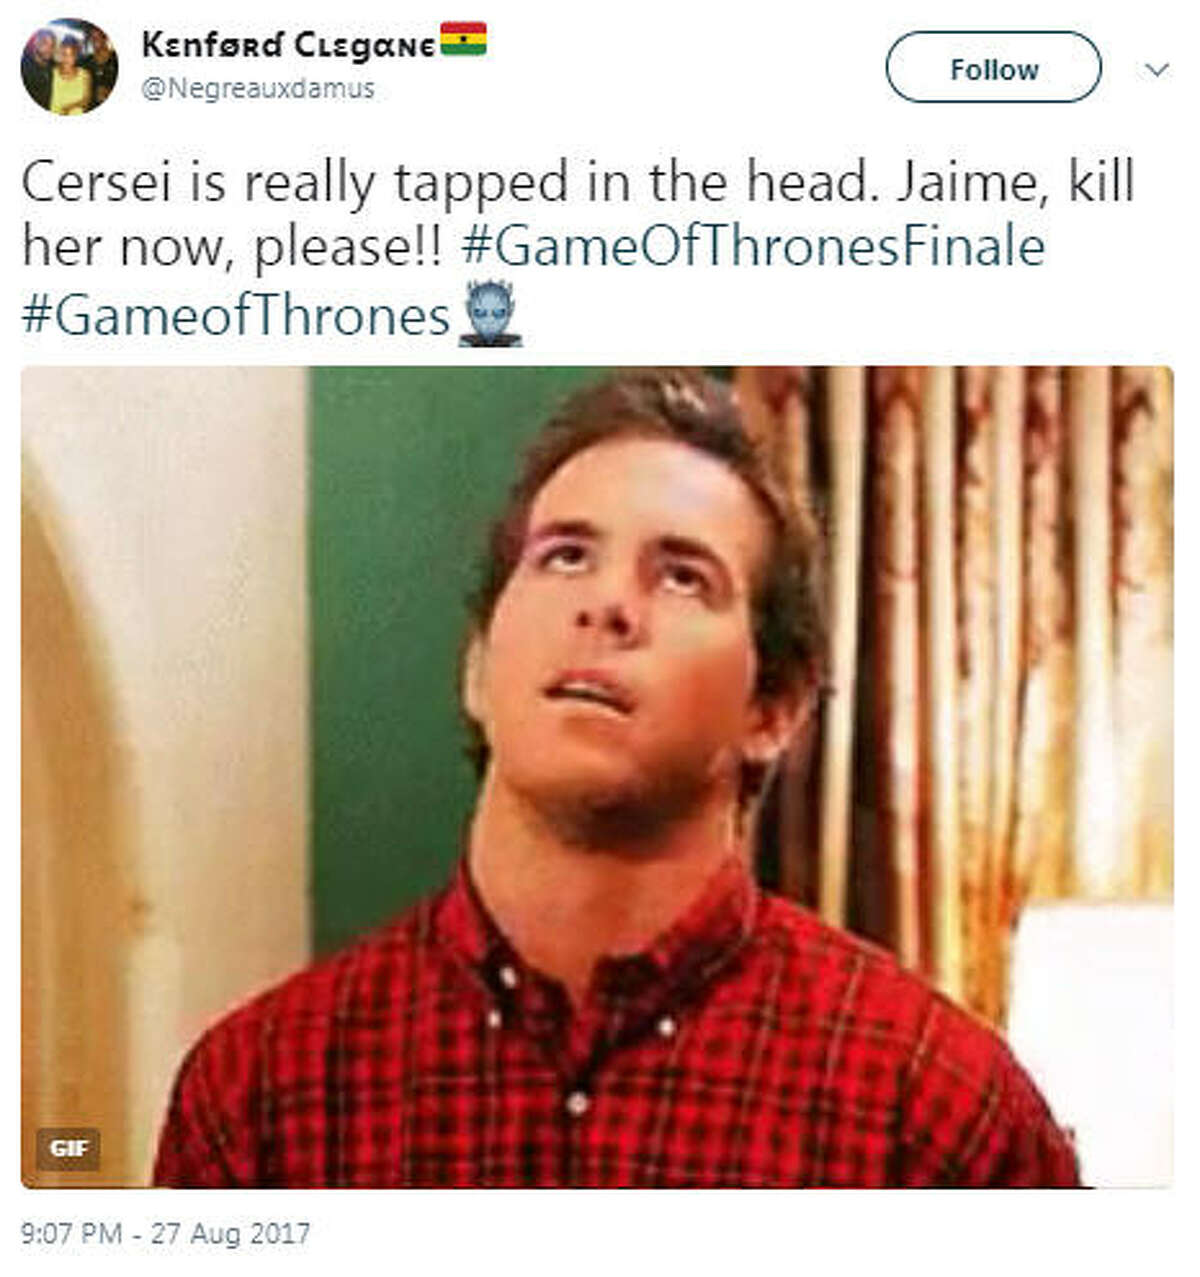 """""""Cersei is really tapped in the head. Jaime, kill her now, please!! #GameOfThronesFinale #GameofThrones"""" Source: Twitter The incestuous relationship between the Lannister twins seemingly came to an end at the end of Season 7."""